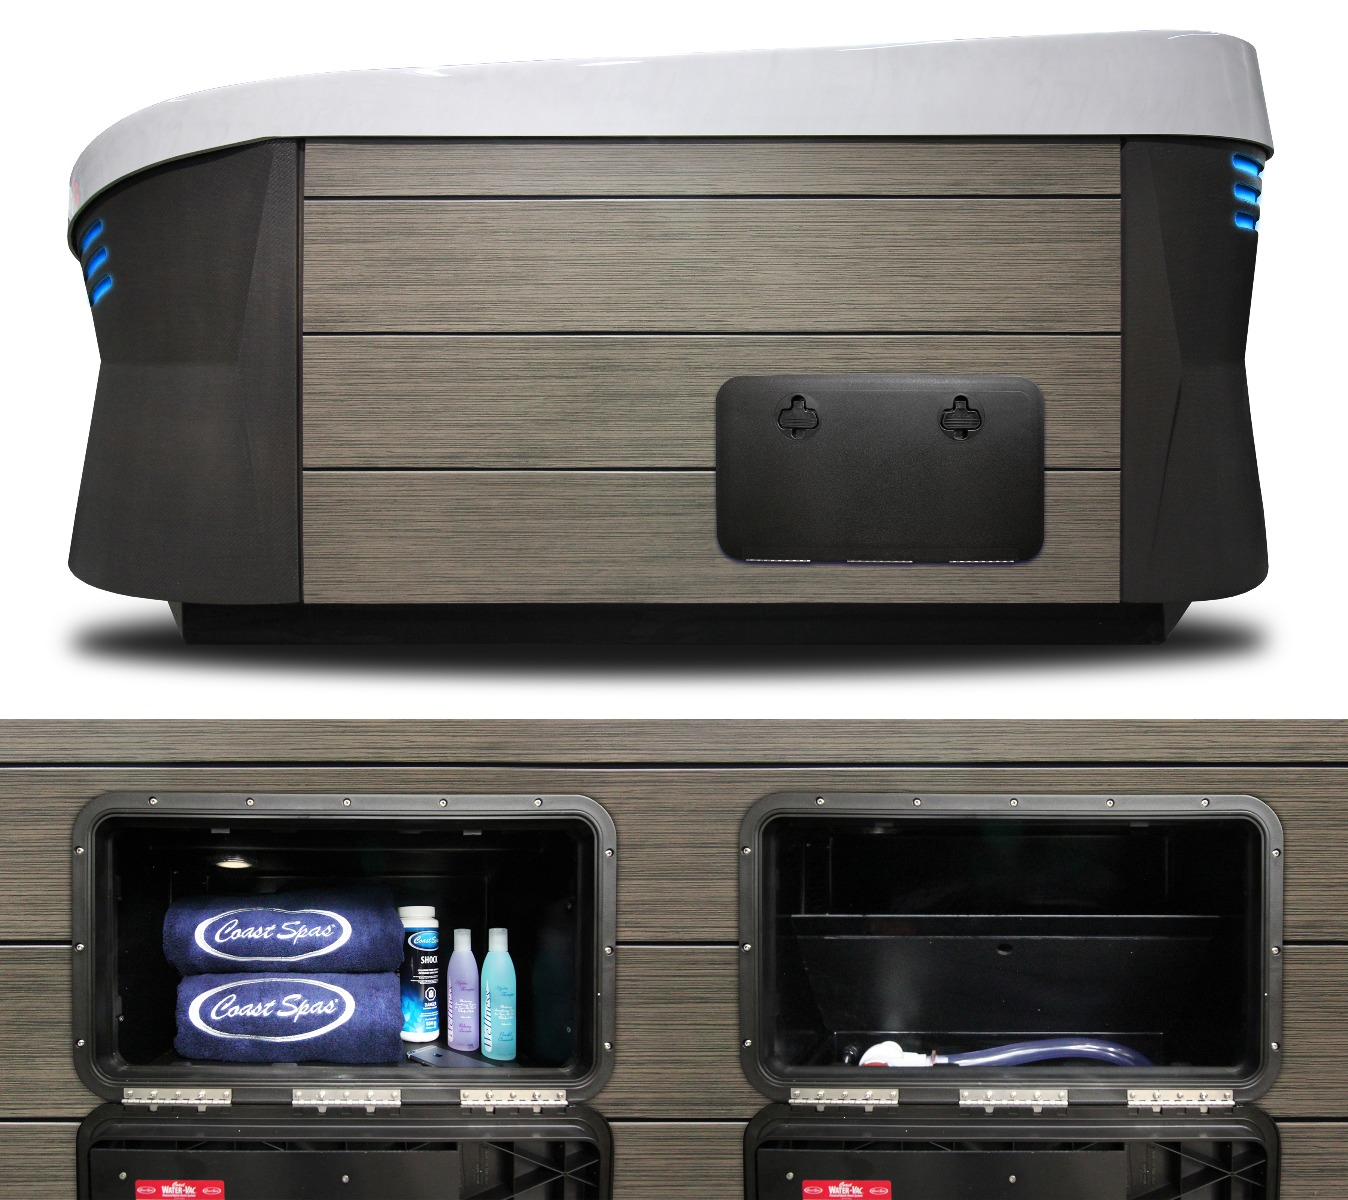 Coast Spas Hot Tub Cubby